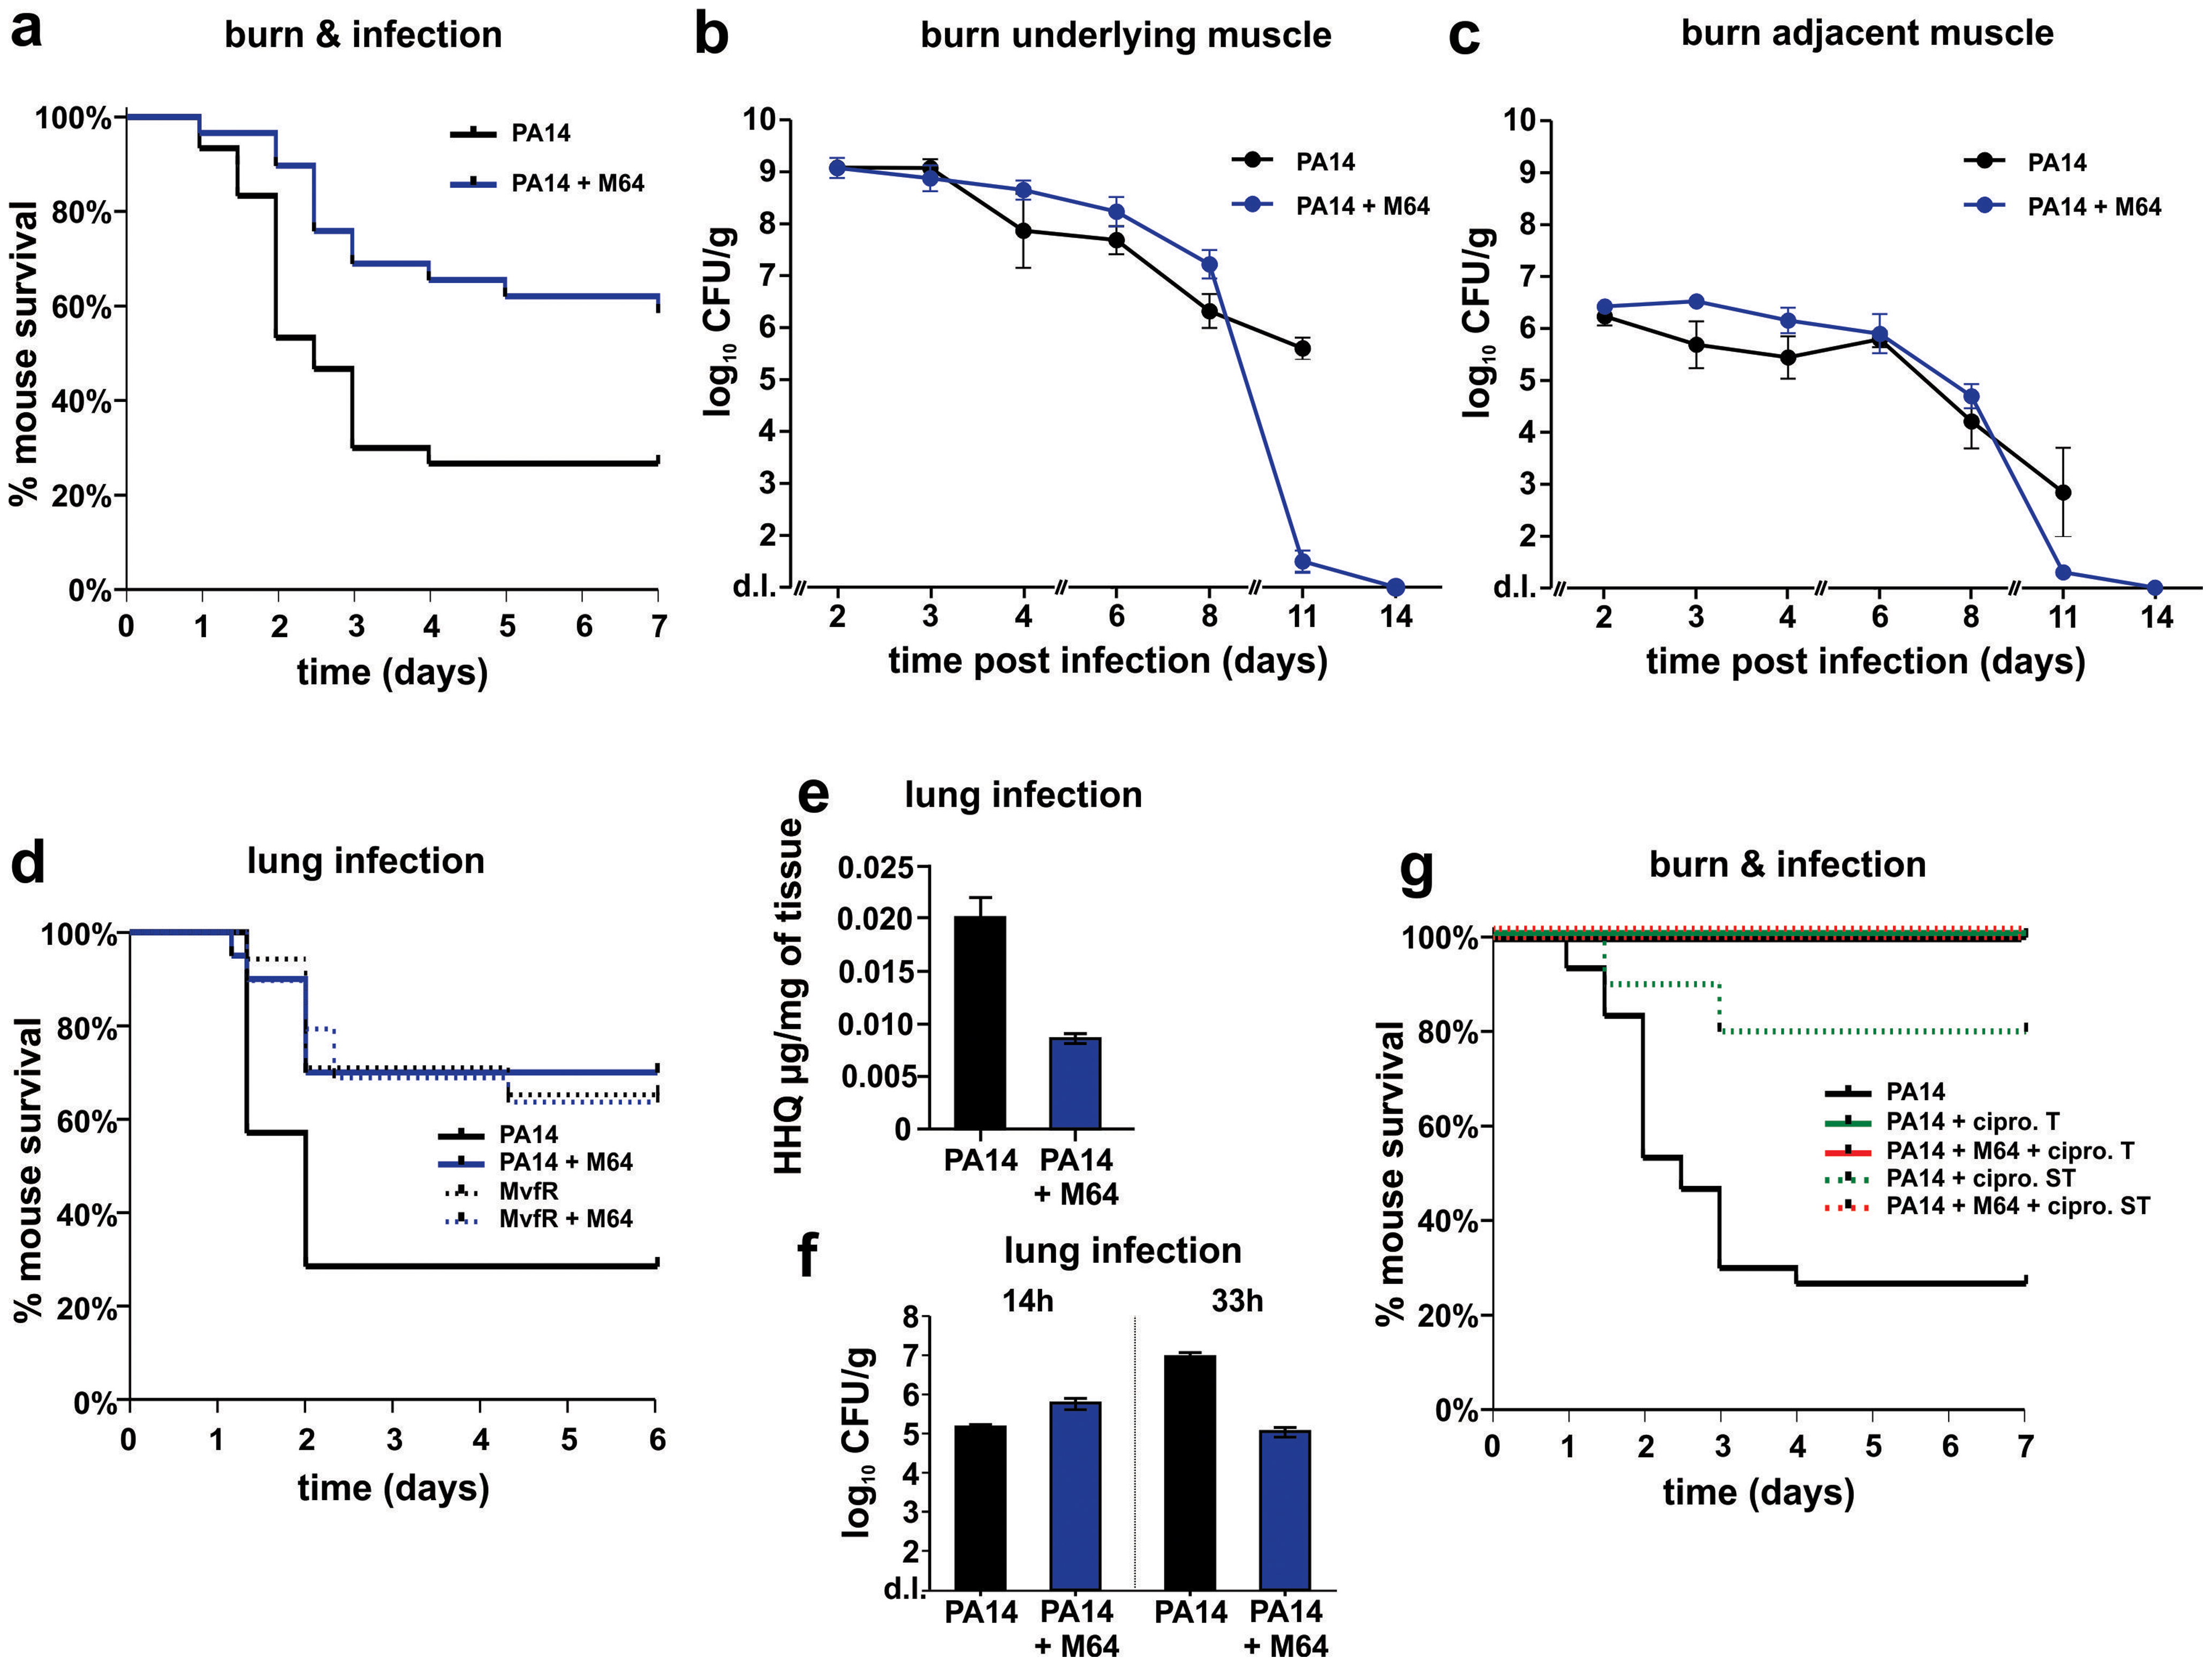 M64 reduces PA14 virulence in mouse burn infection, and lung infection, models.